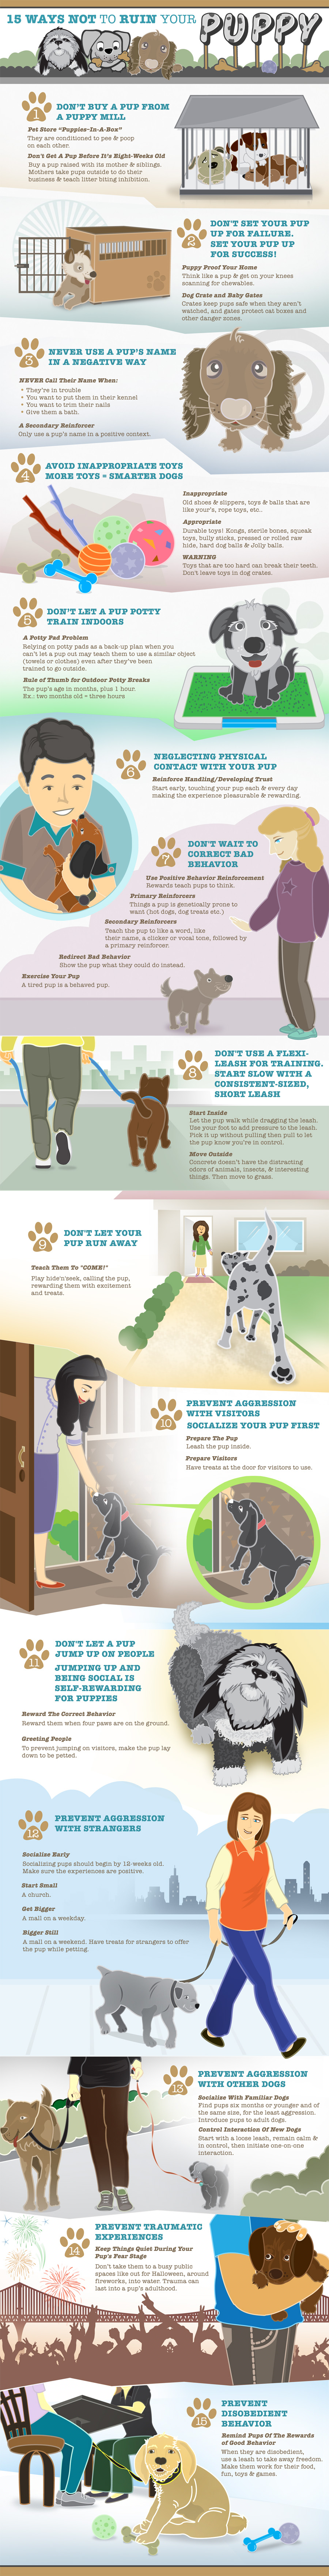 Puppy Training Graphic.jpg